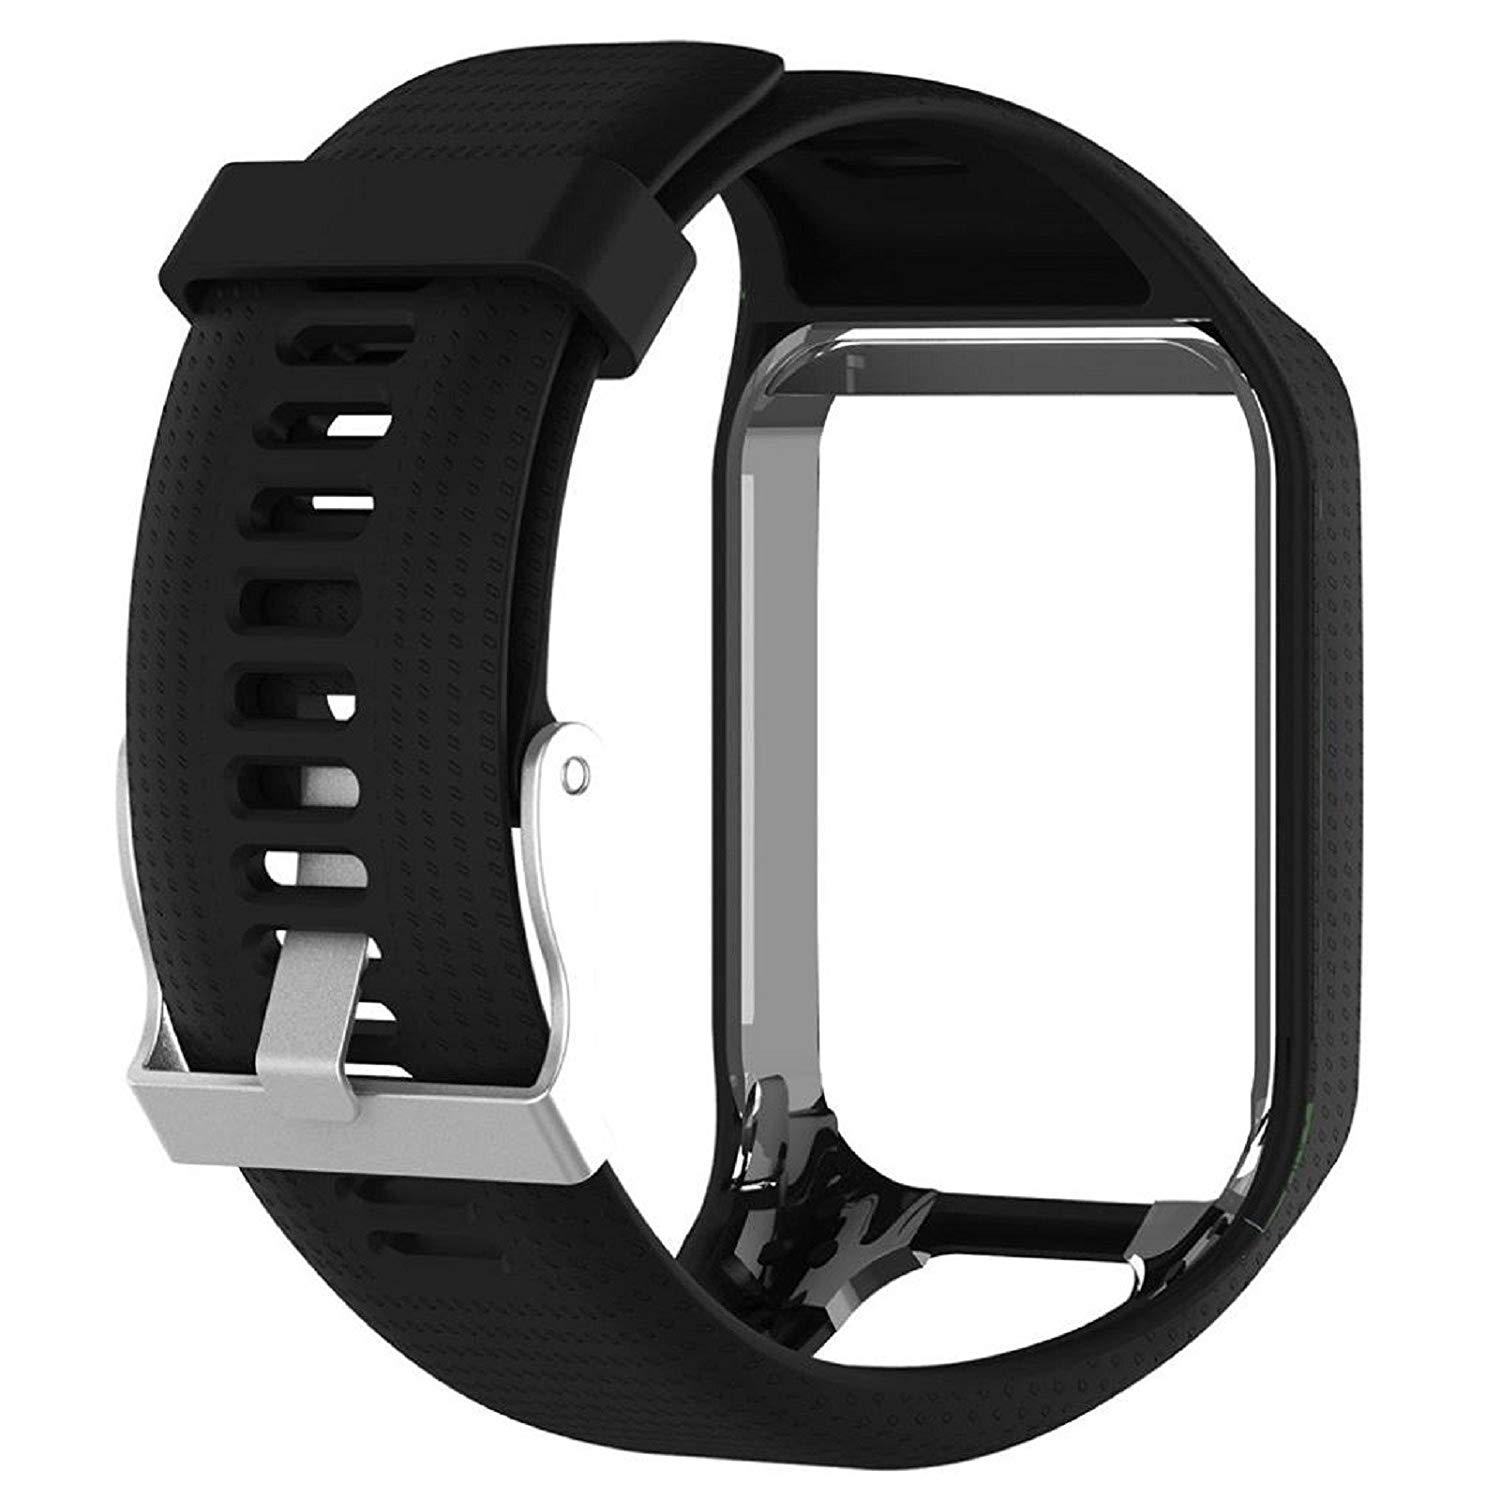 Owill Replacement Silicone Band Strap Frame For Tom Tom Spark/Runner GPS Watch, Band Length: 23cm, Great for Hiking Climbing (Black)